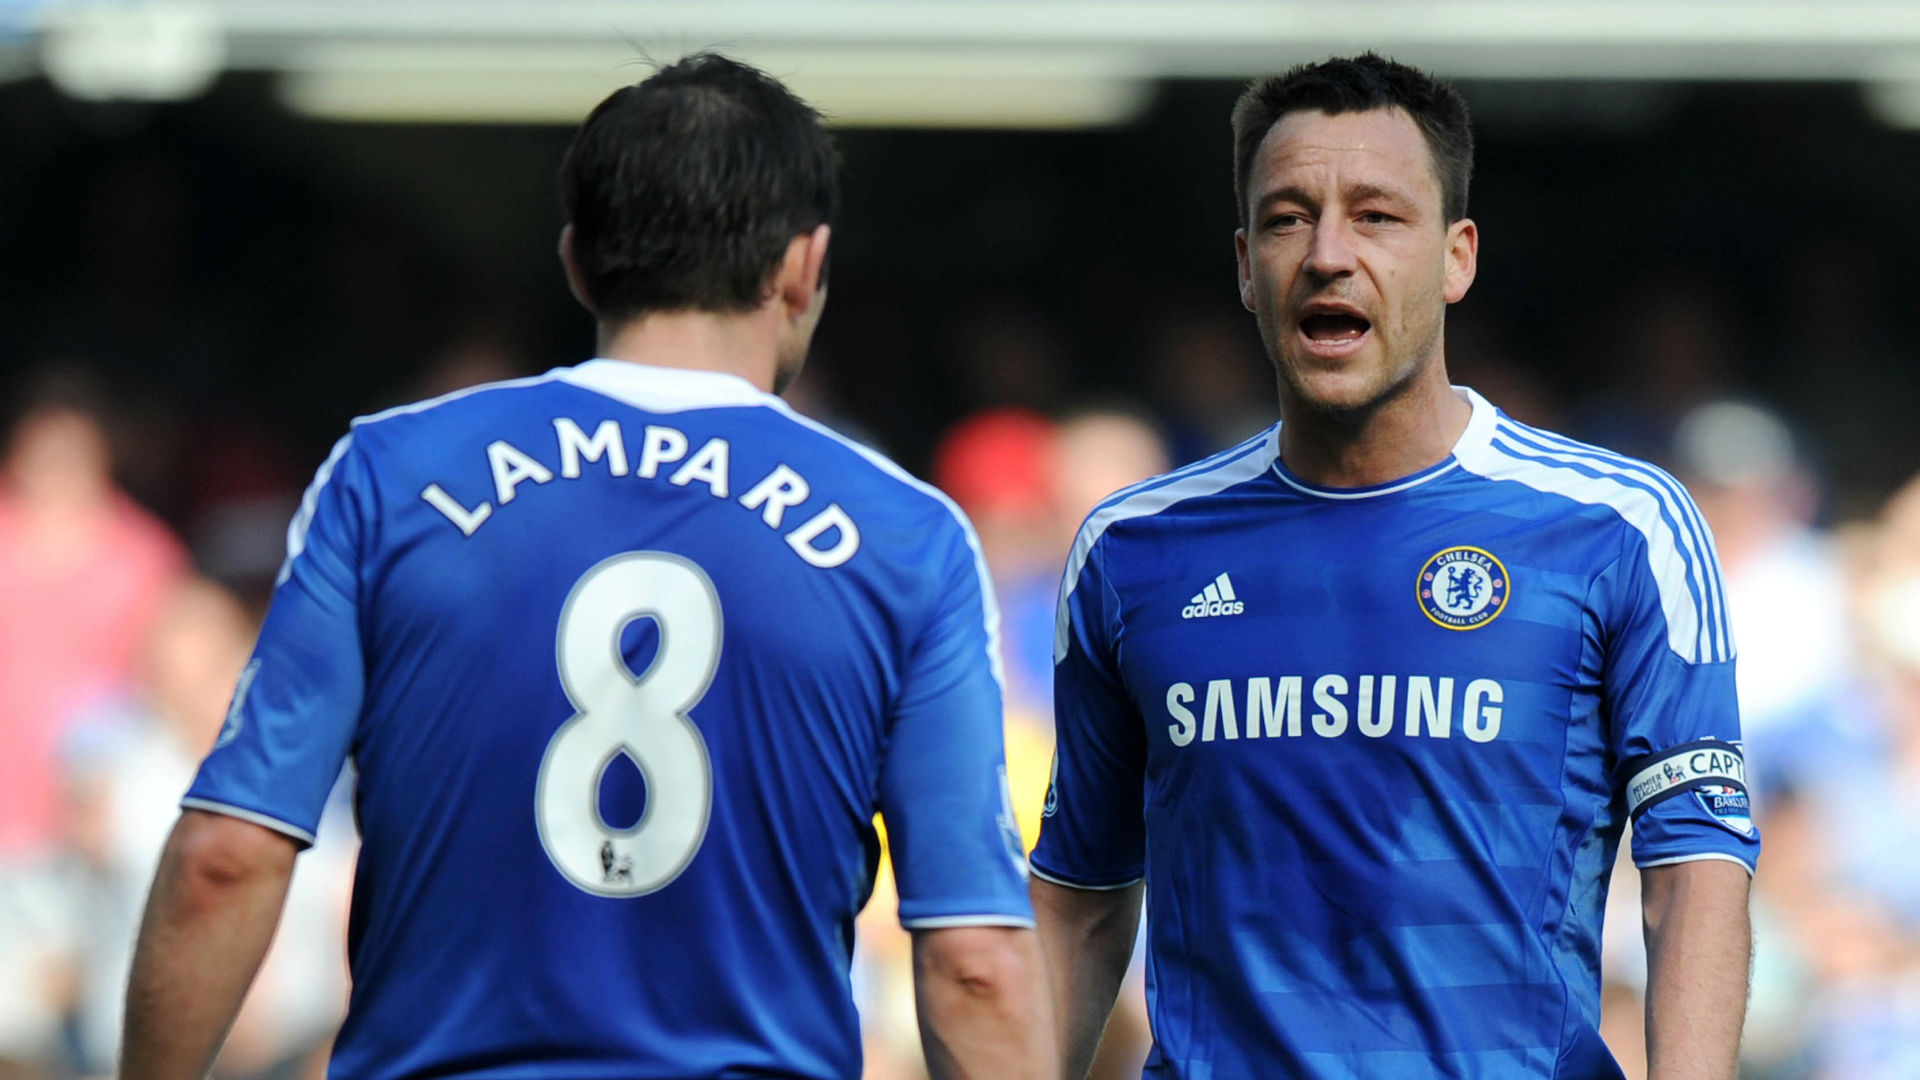 Di r Drogba Eden Hazard and Sergio Aguero make Chelsea legend